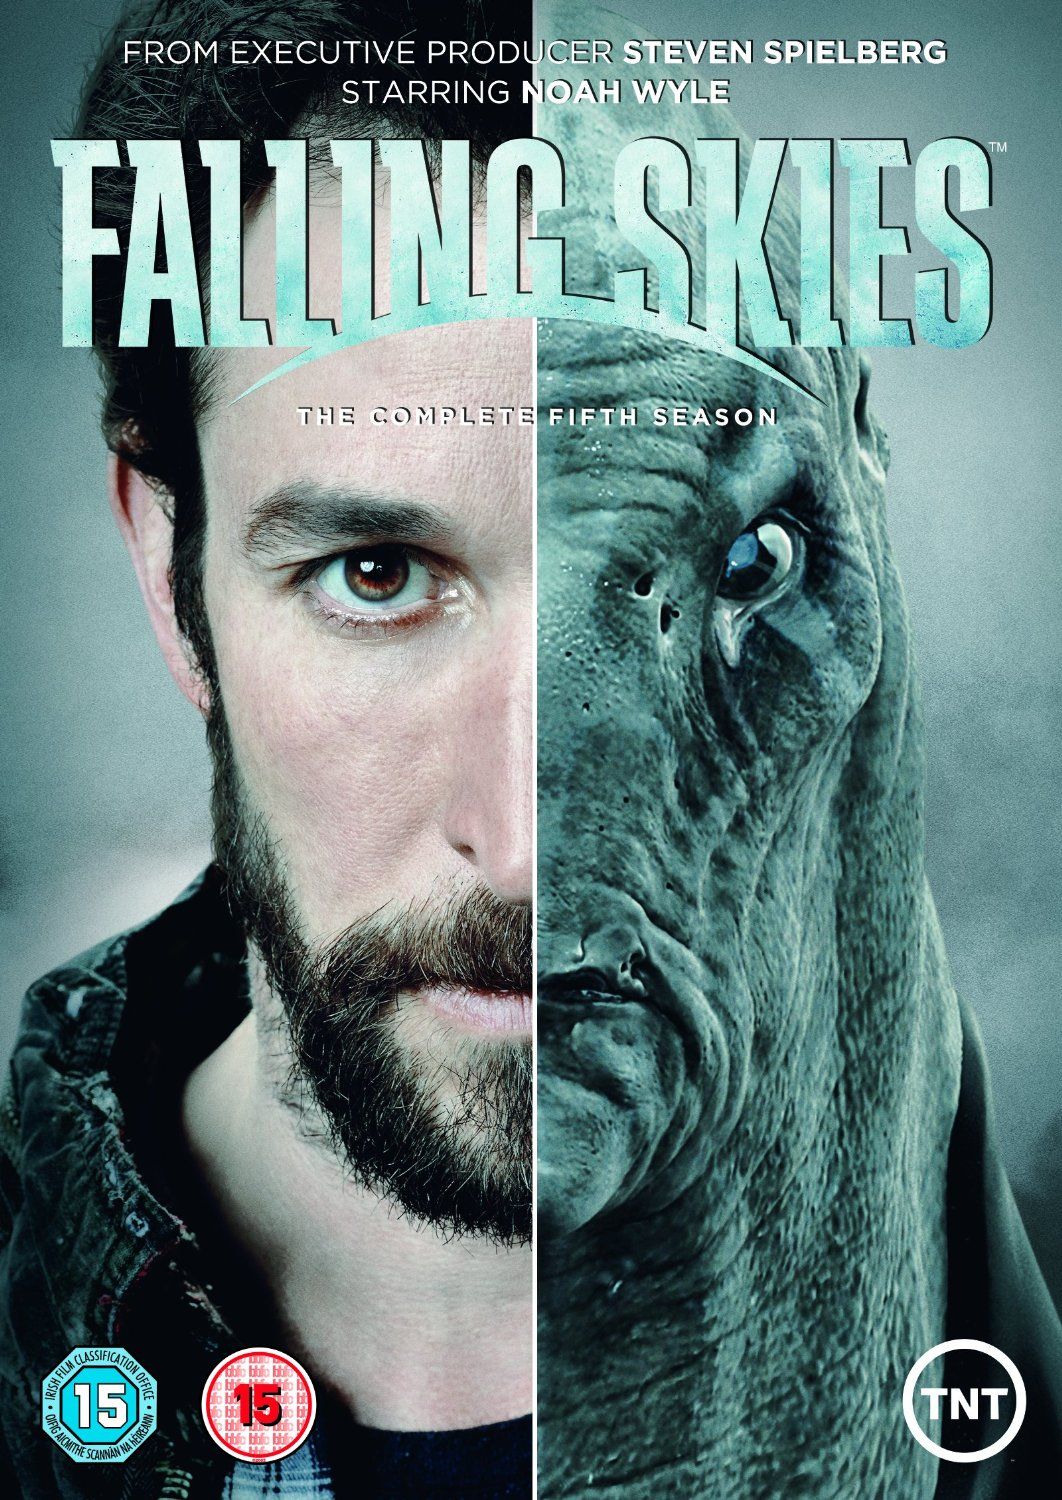 Falling Skies Season 5 DVD review: Earth's final hour?